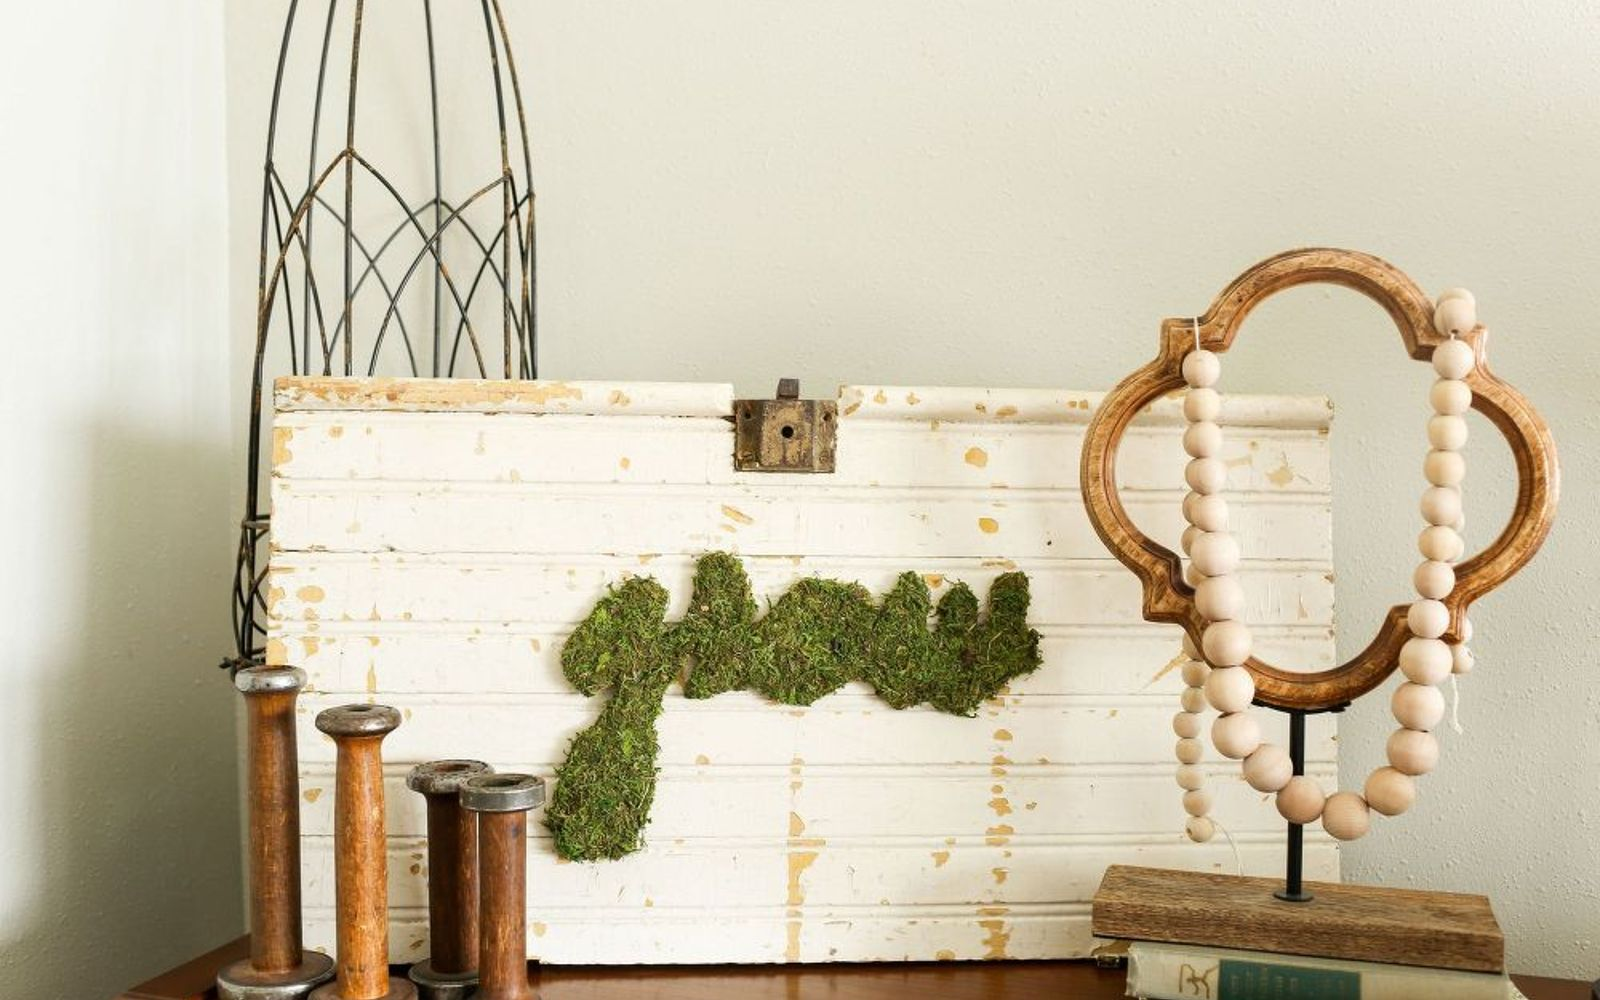 s these are the hottest diy spring trends of 2016, crafts, seasonal holiday decor, Write messages with moss